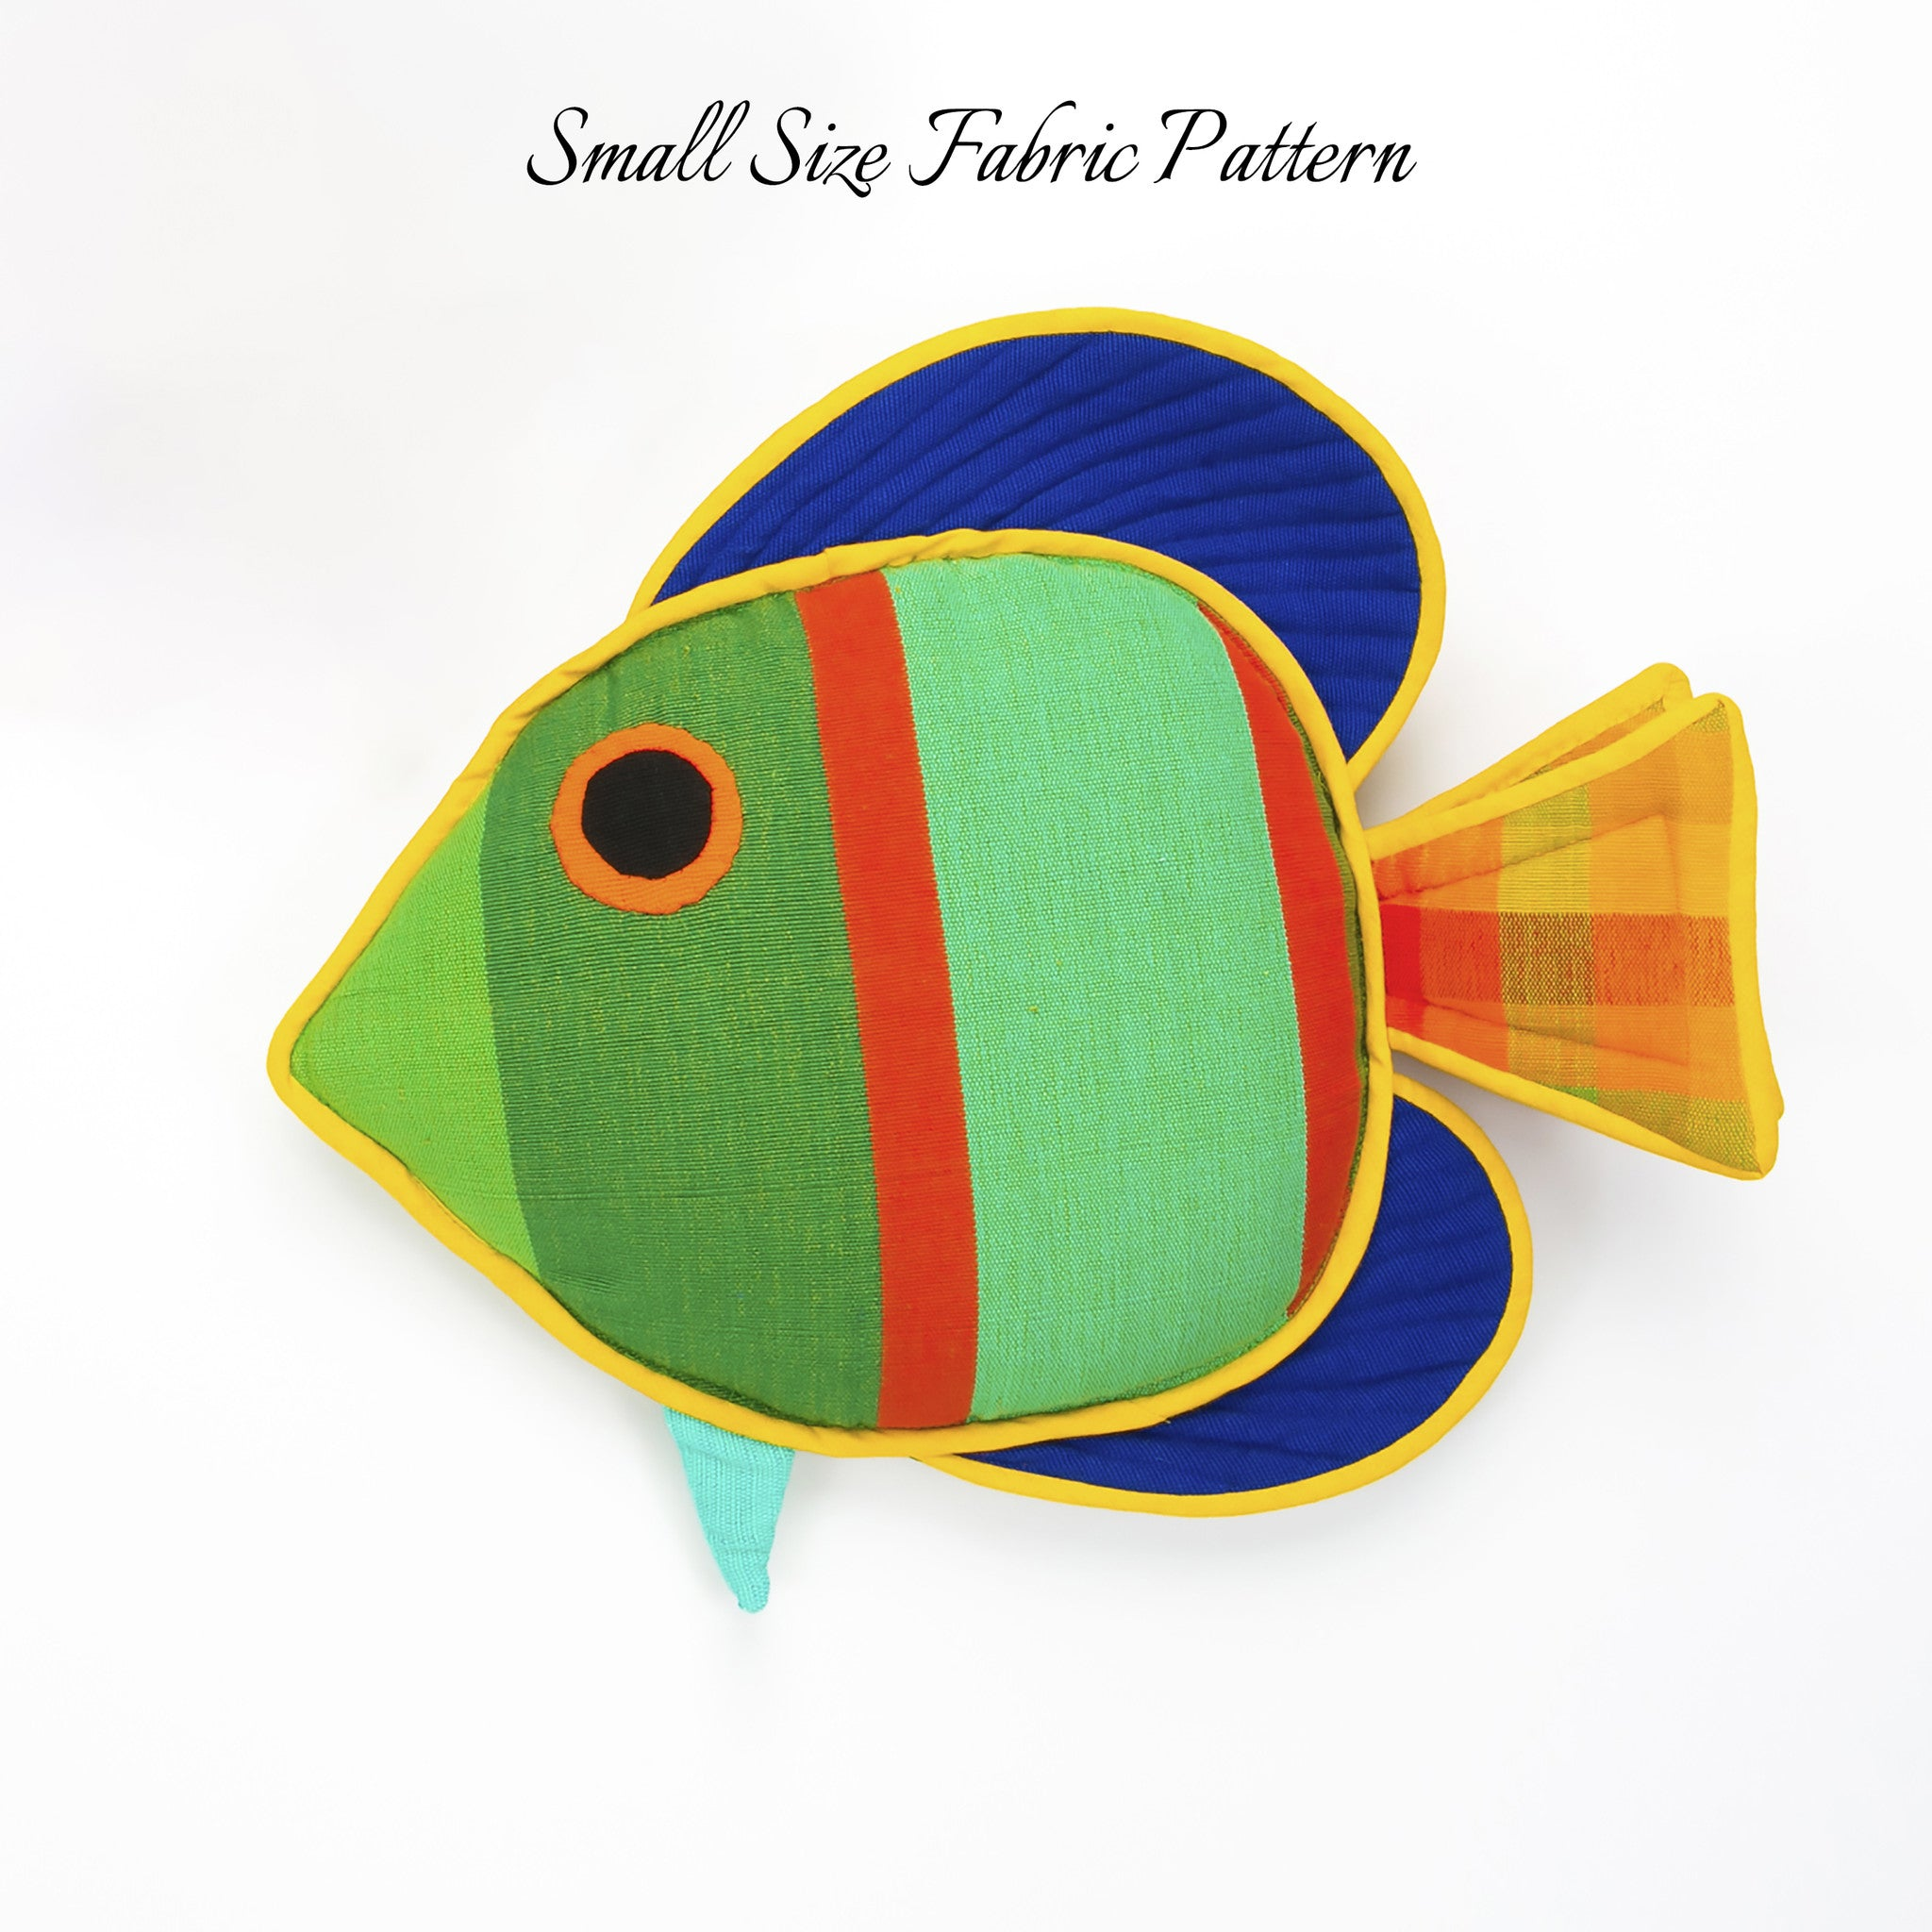 Quincy, the Sail Fin Fish (small size)